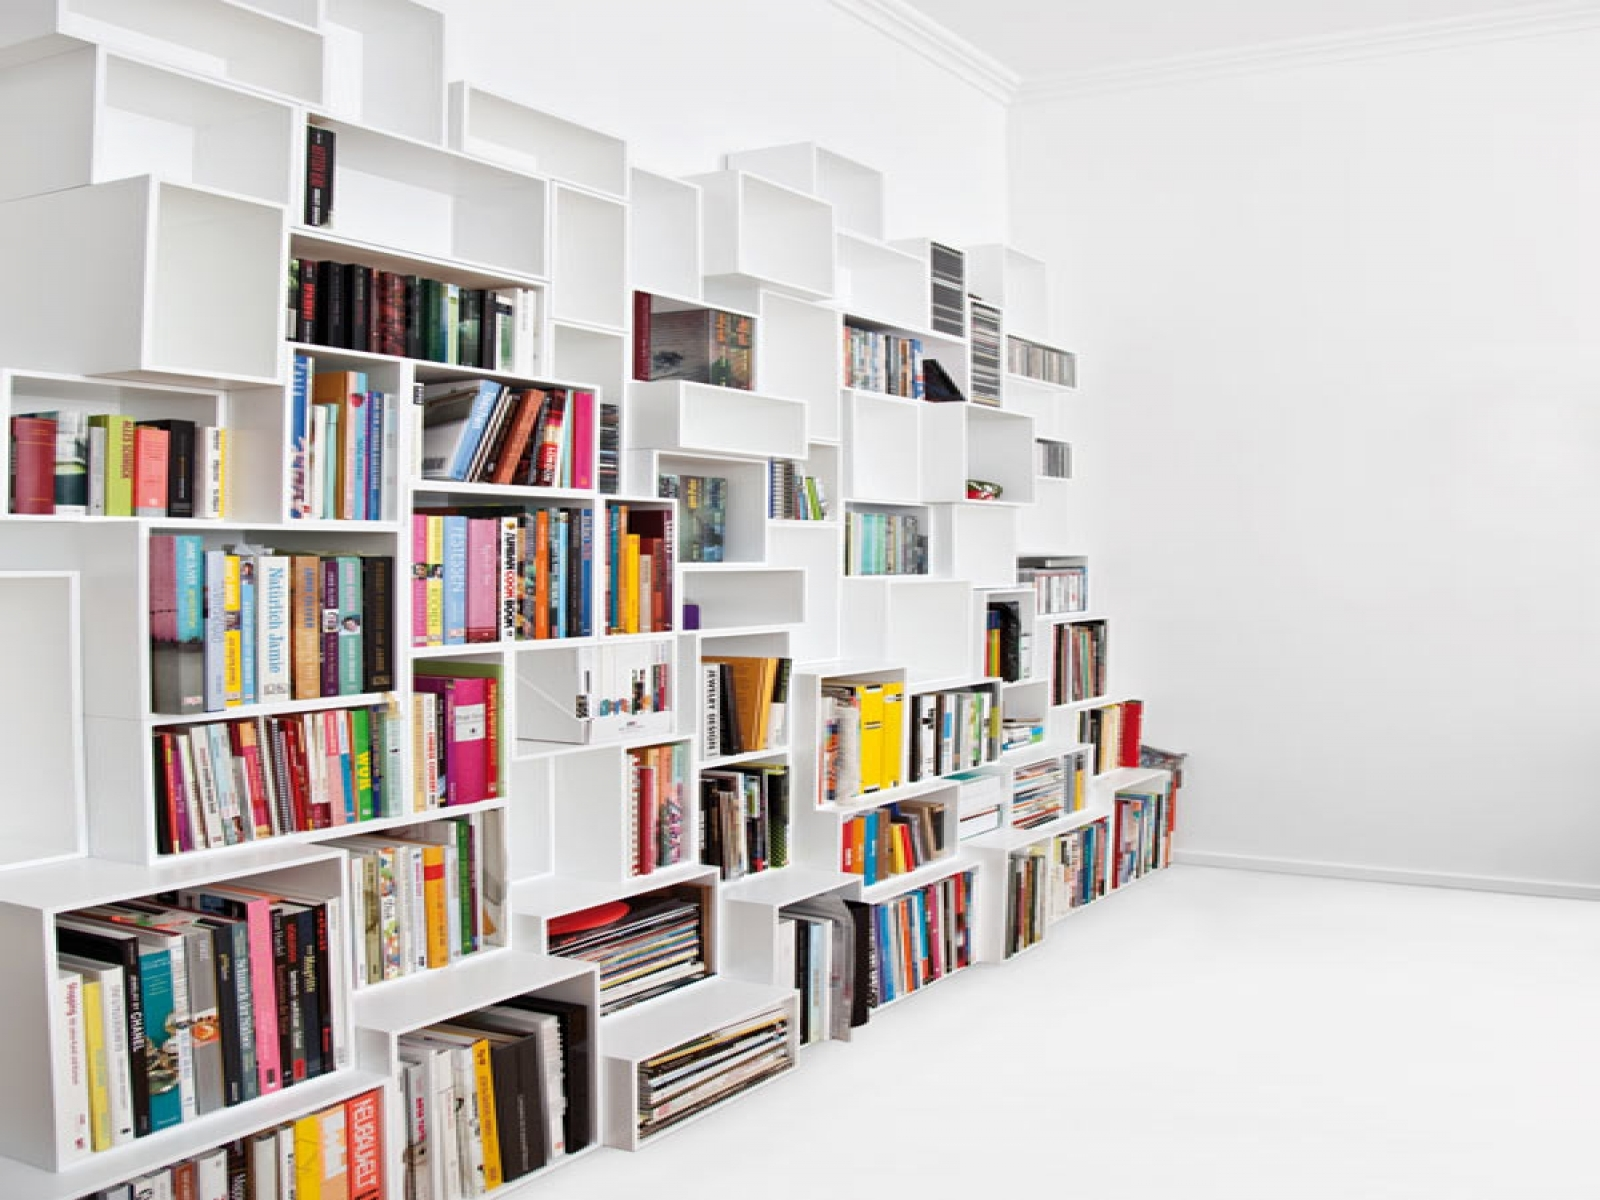 Furnitureamazing Modular Shelving Units Design Ideas With Large Throughout Book Shelving Systems (View 11 of 15)